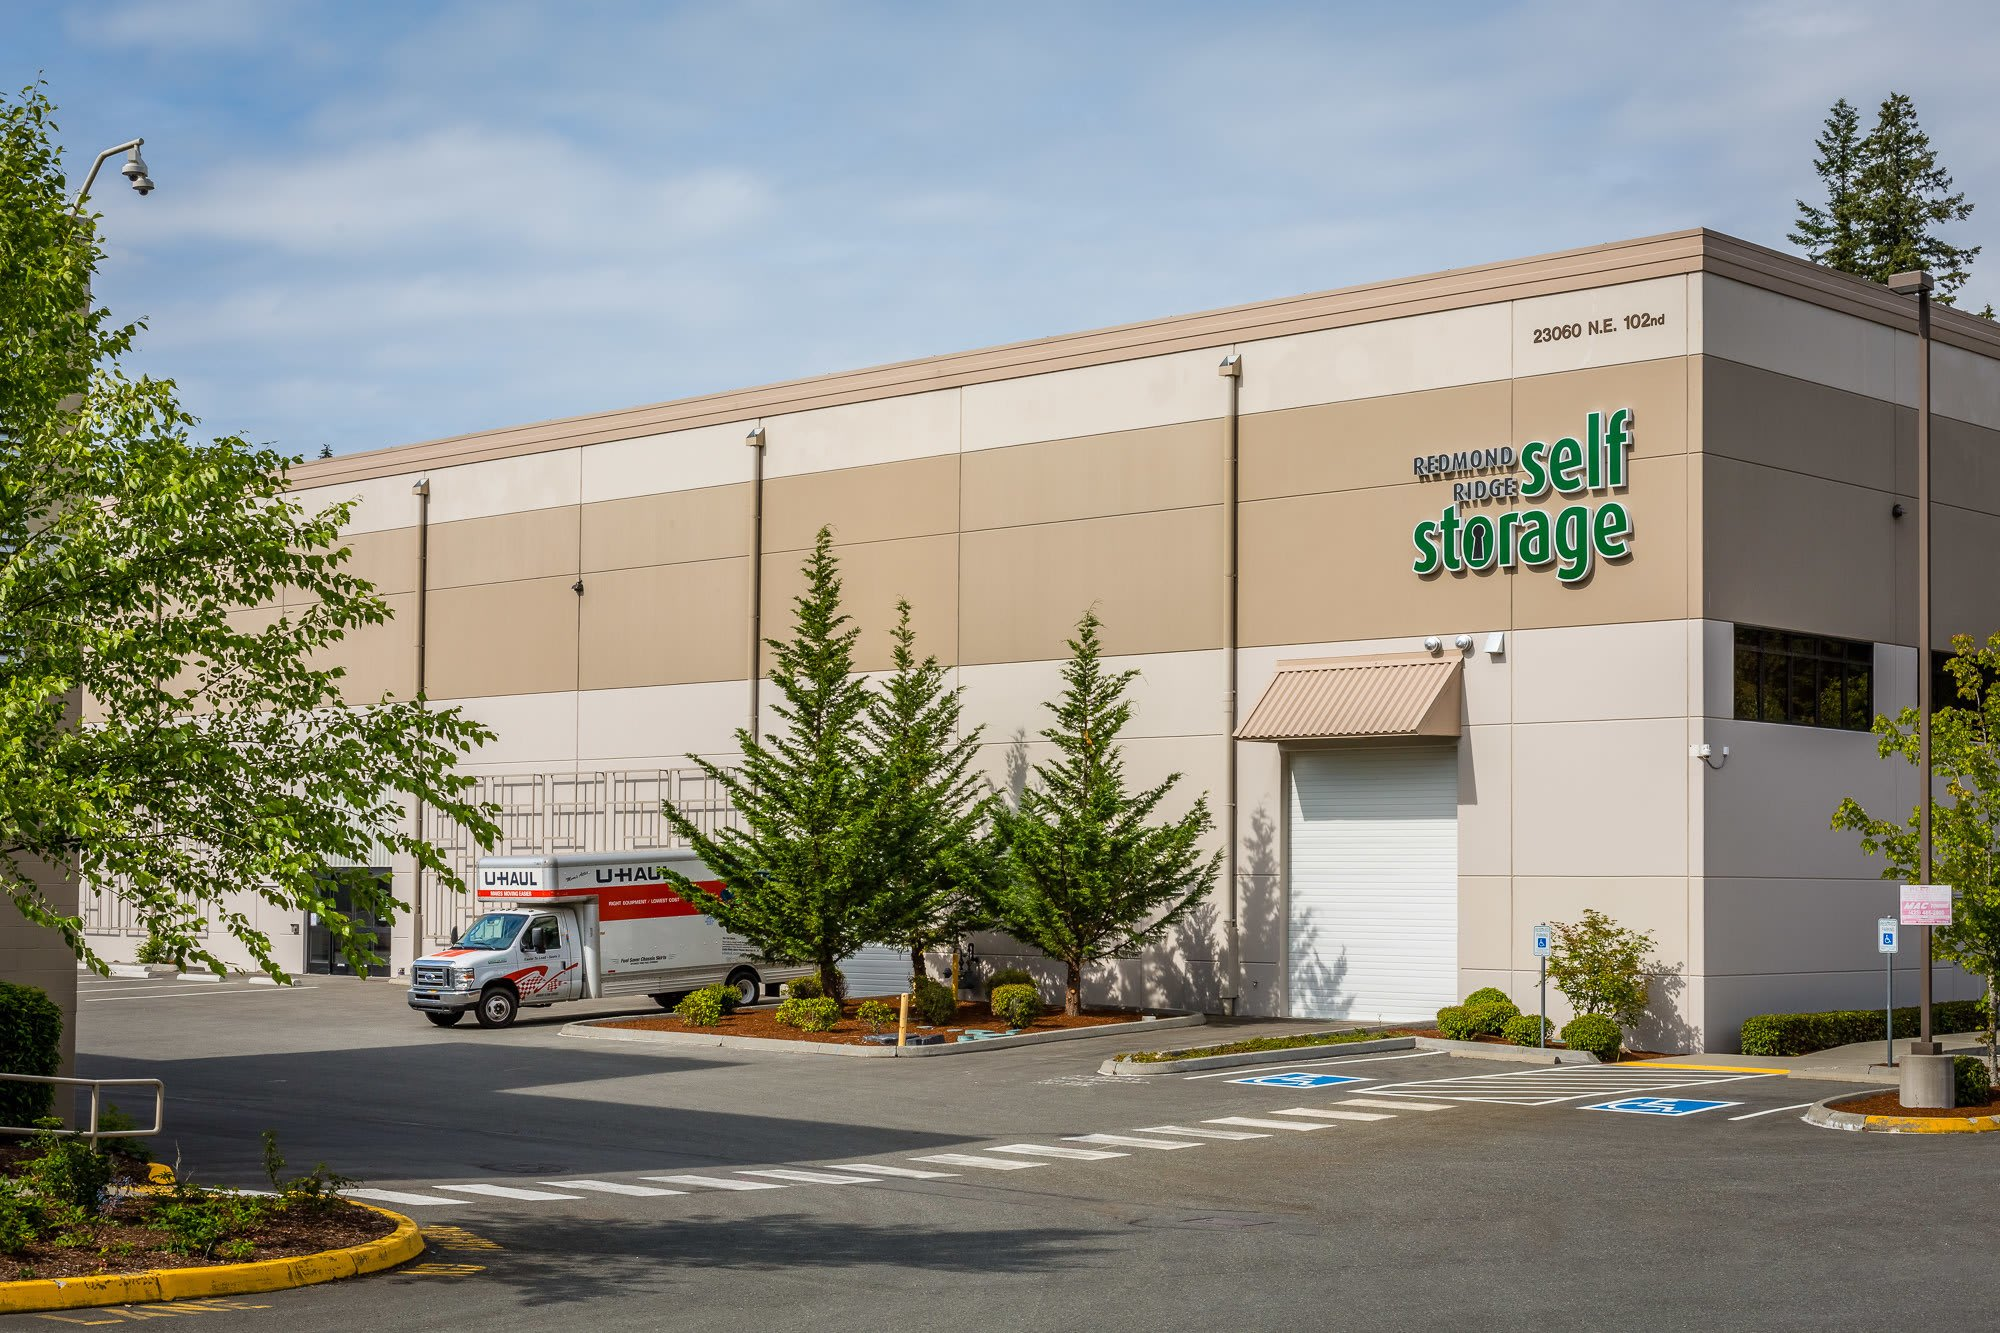 Self storage in Redmond, WA